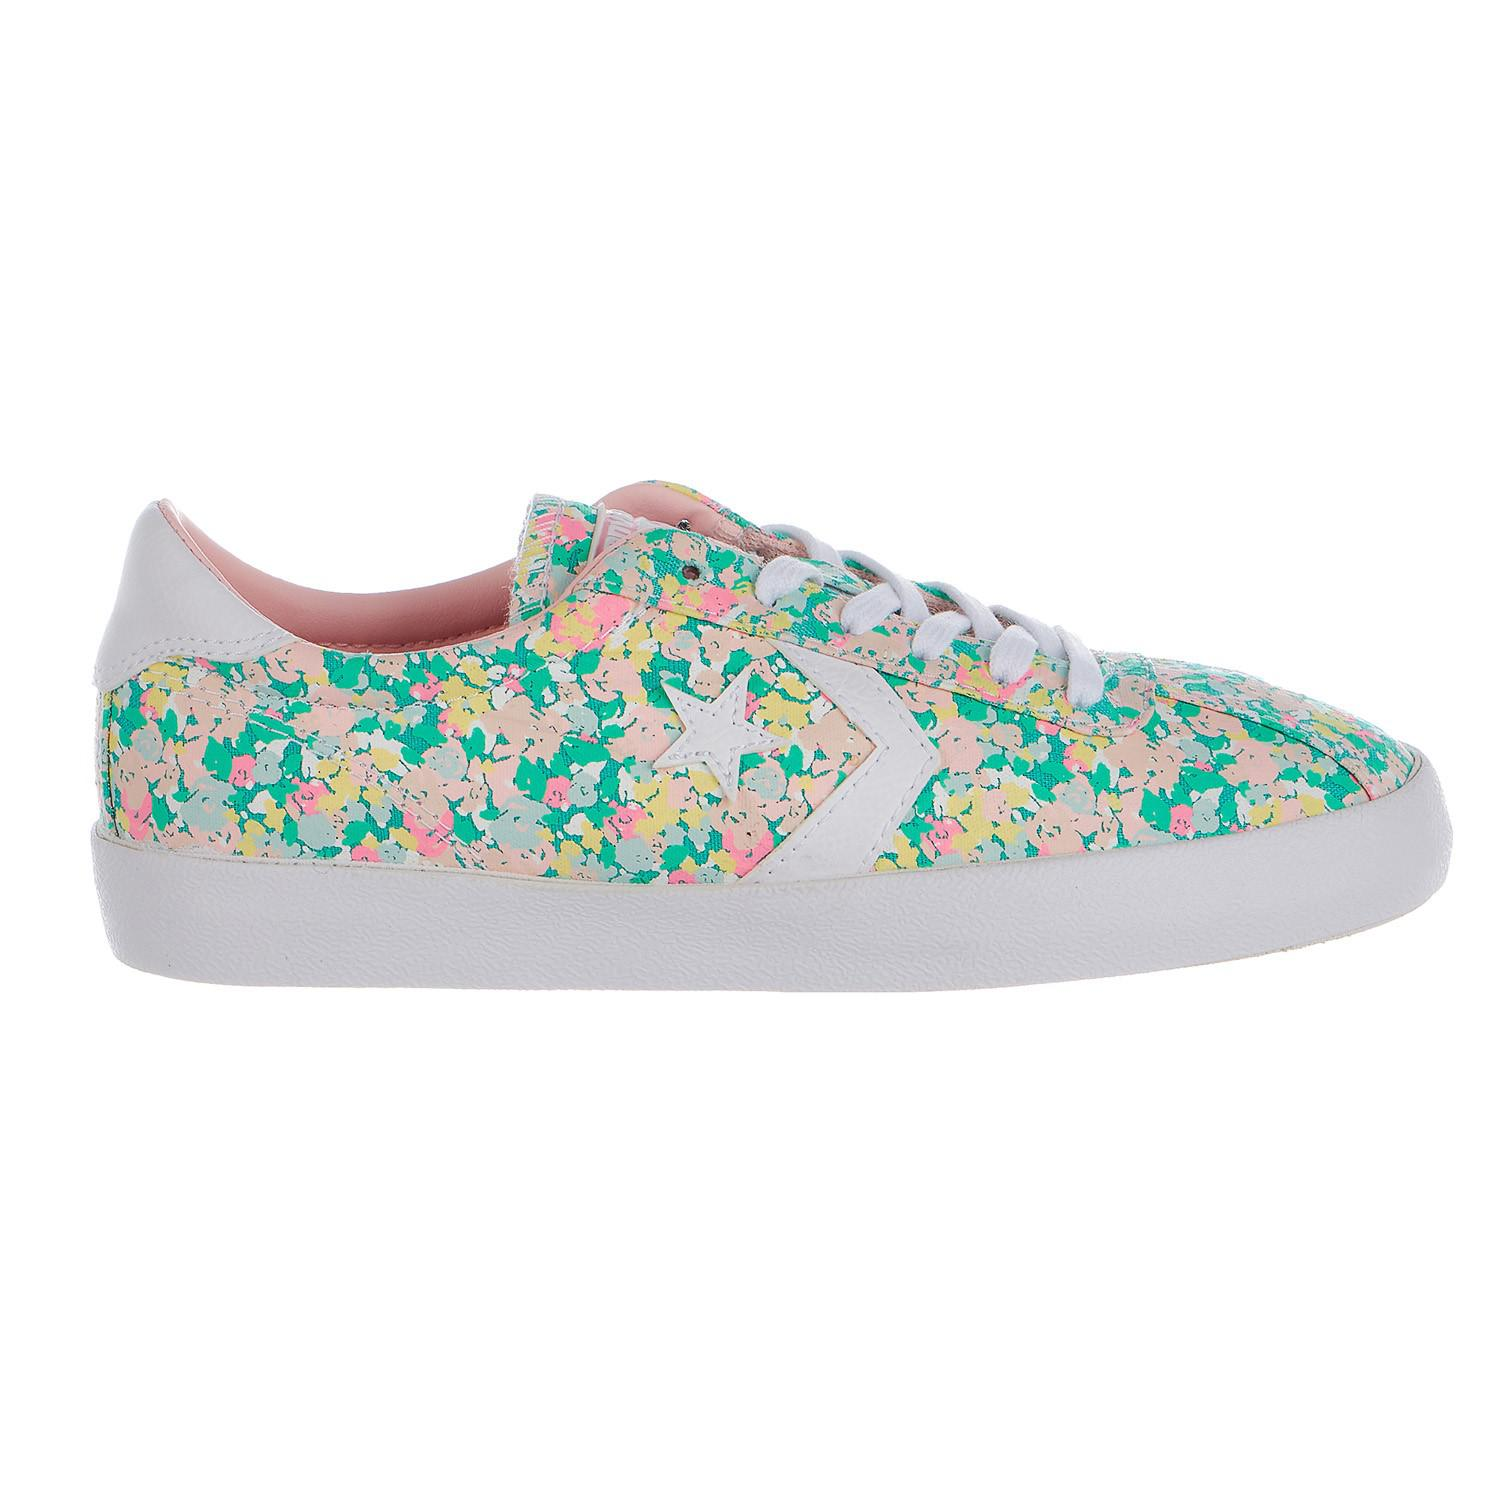 eaa75236d83e Lyst - Converse Women Chuck Taylor All Star Floral Breakpoint Ox ...